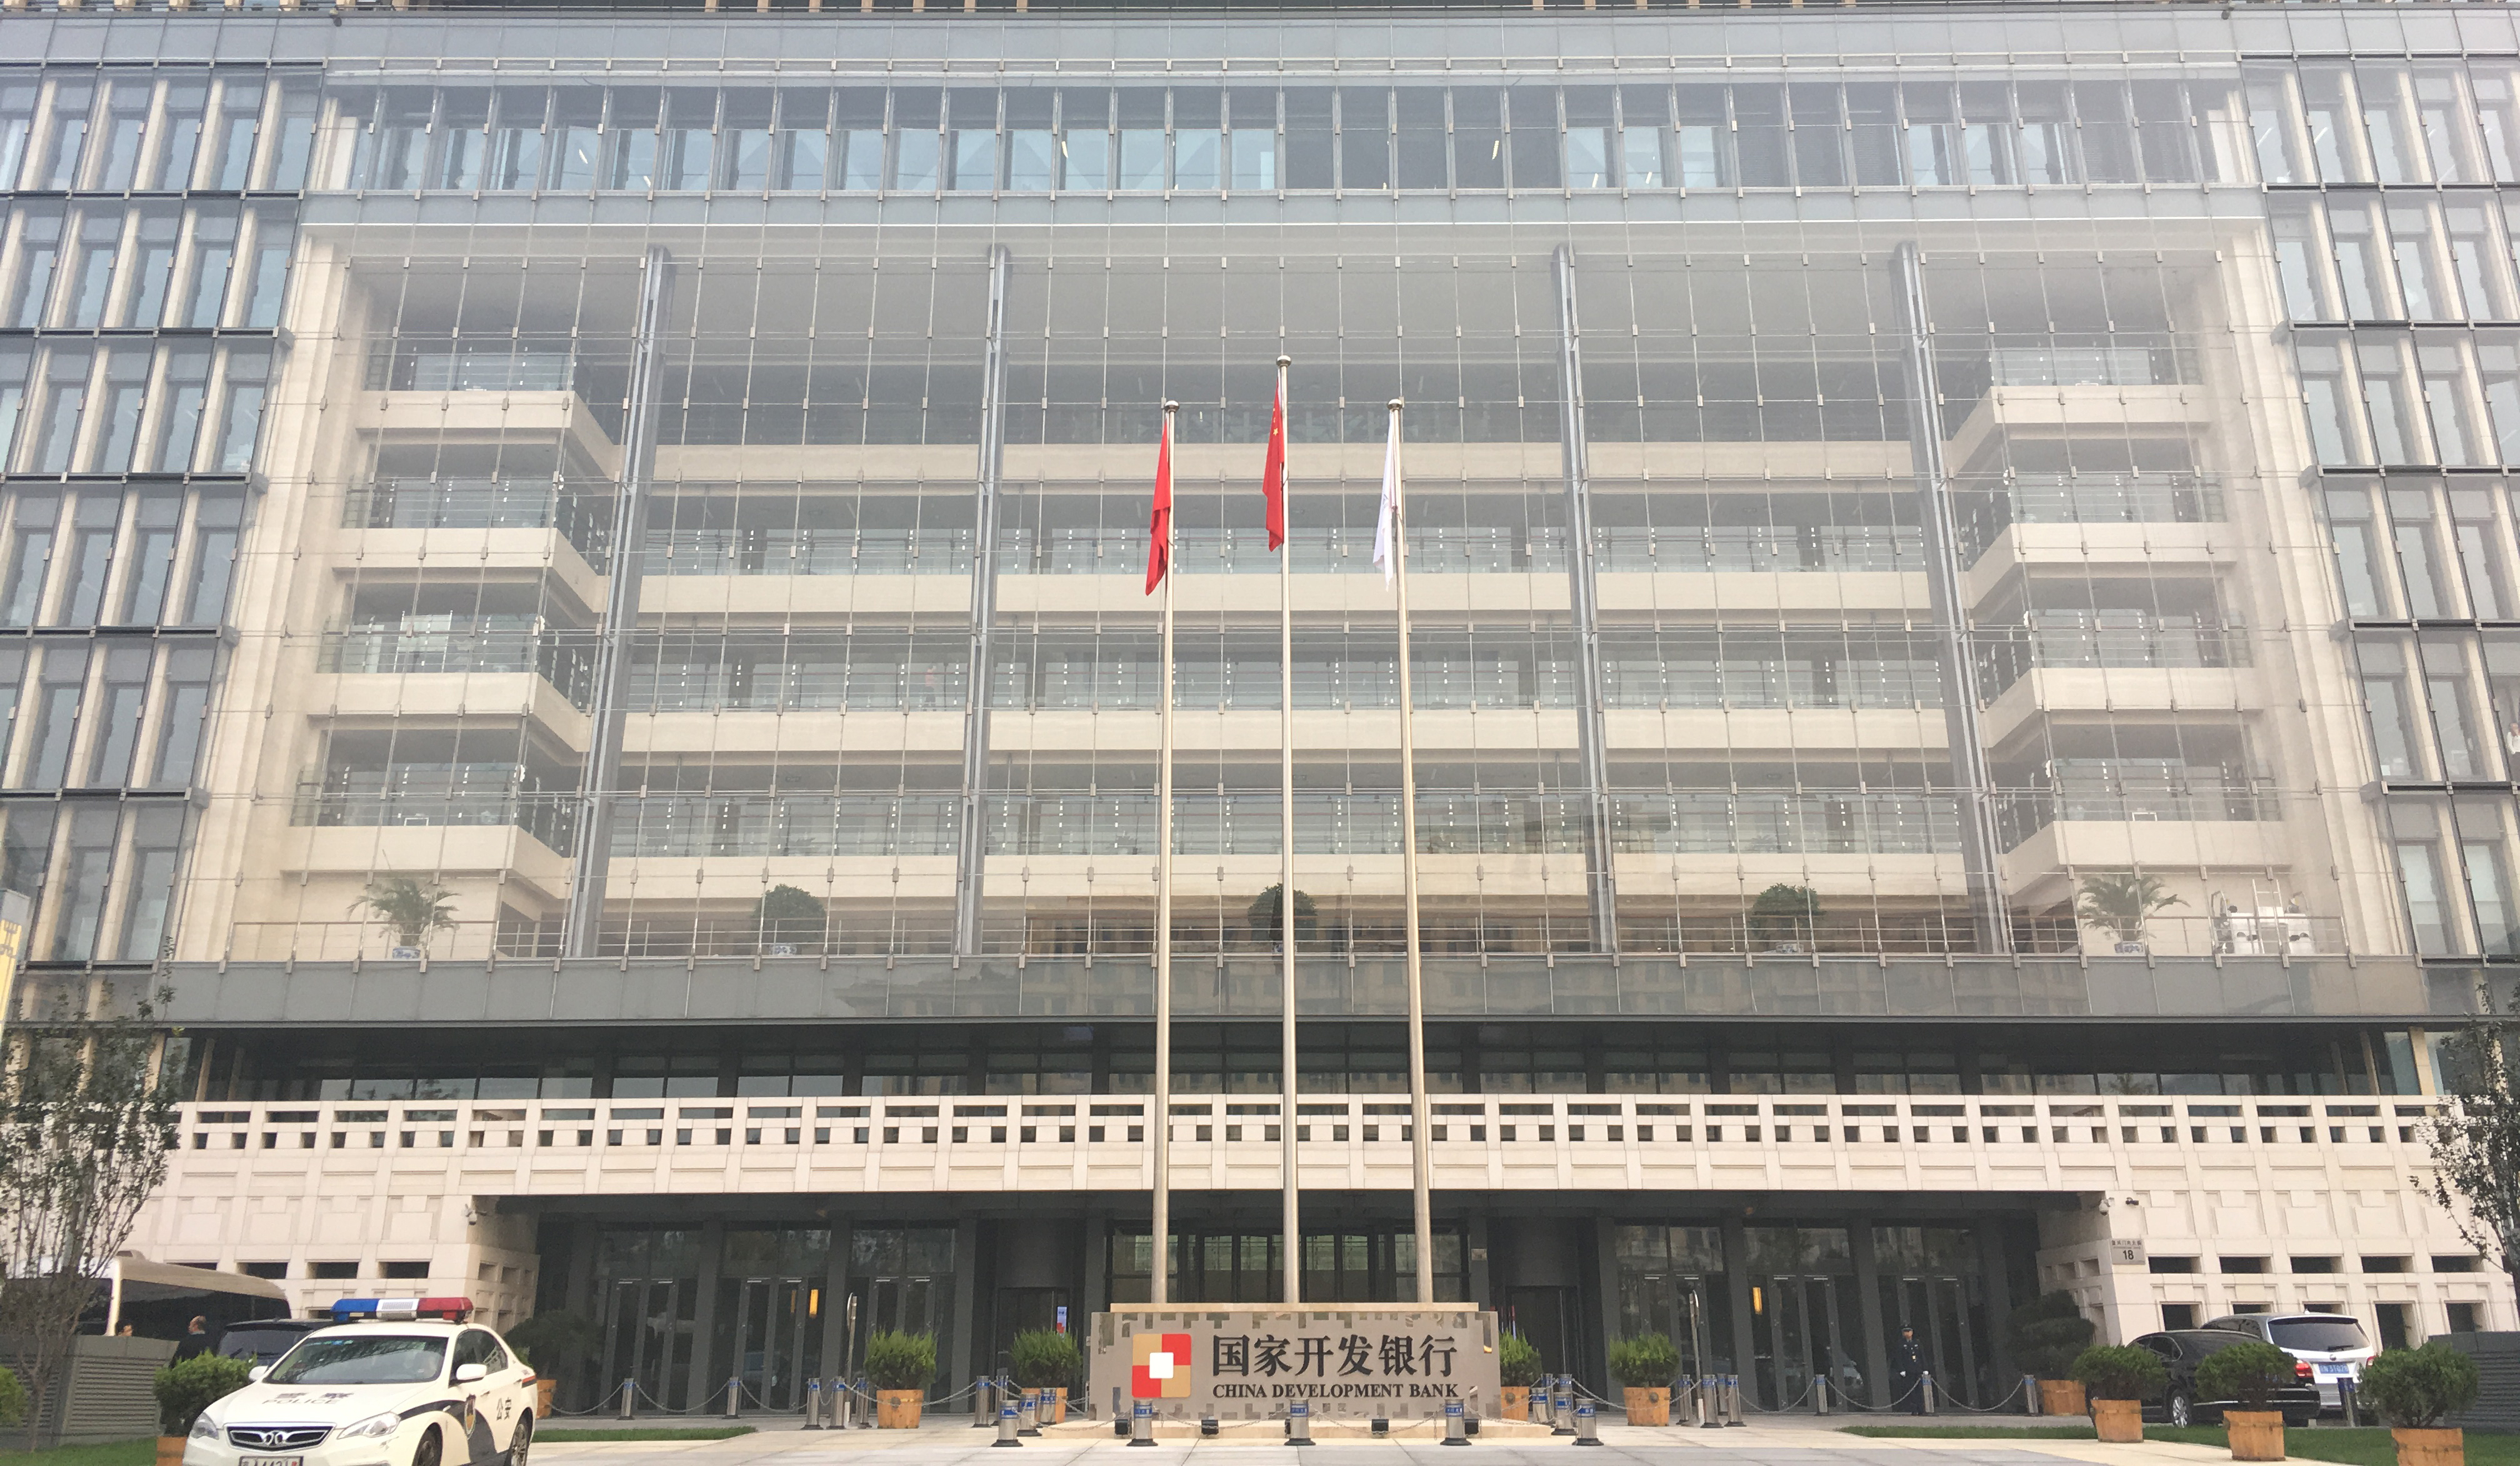 gallagher in global policy on chinese development finance the kevin gallagher professor of global development policy at the frederick s pardee school of global studies at boston university published a recent article